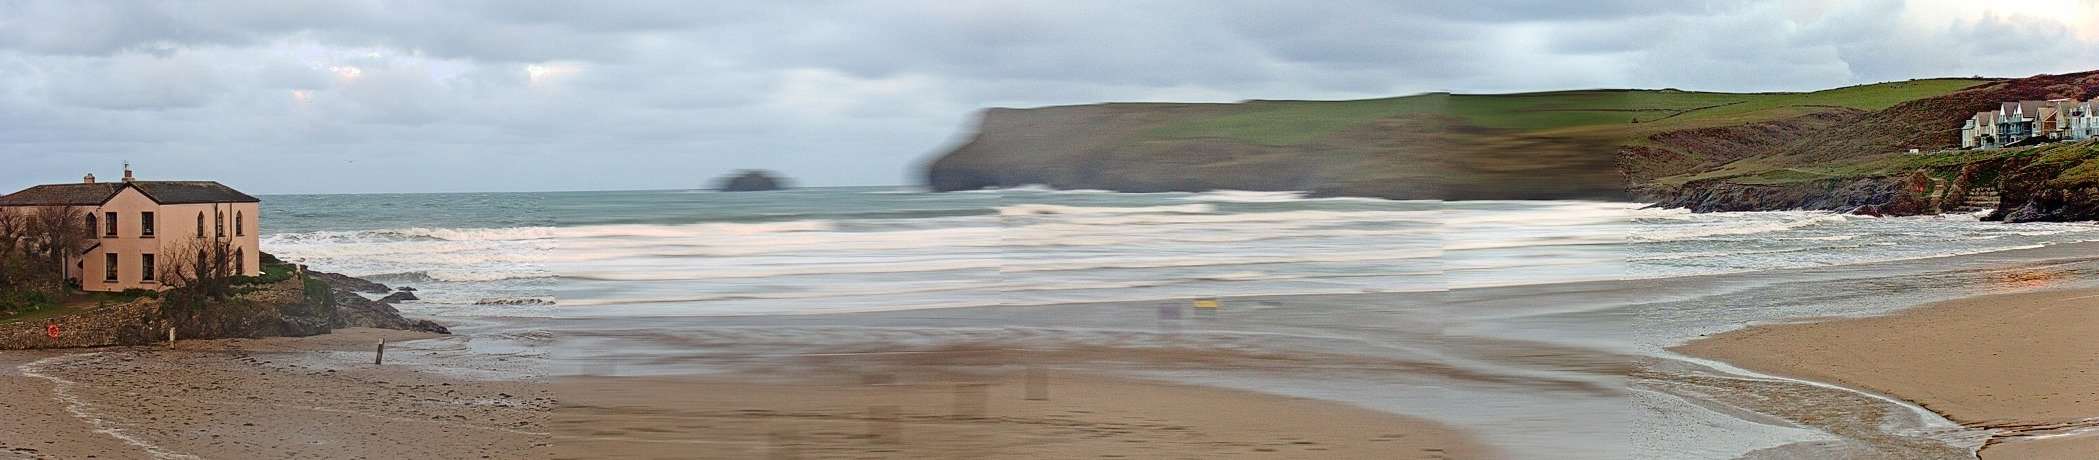 Latest webcam still for Polzeath